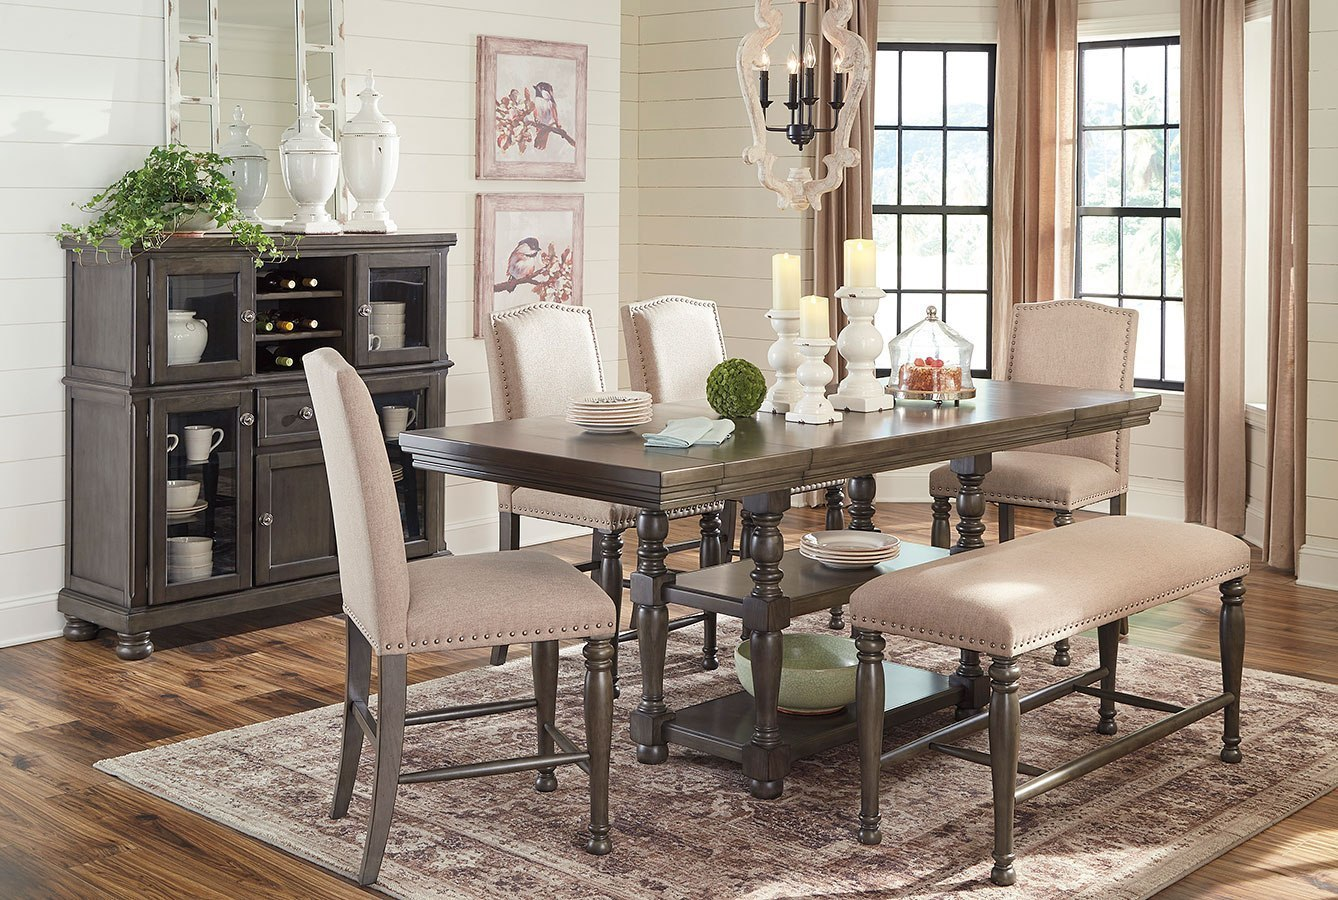 Audberry Counter Height Dining Room Set W/ Bench By Signature Design By Ashley